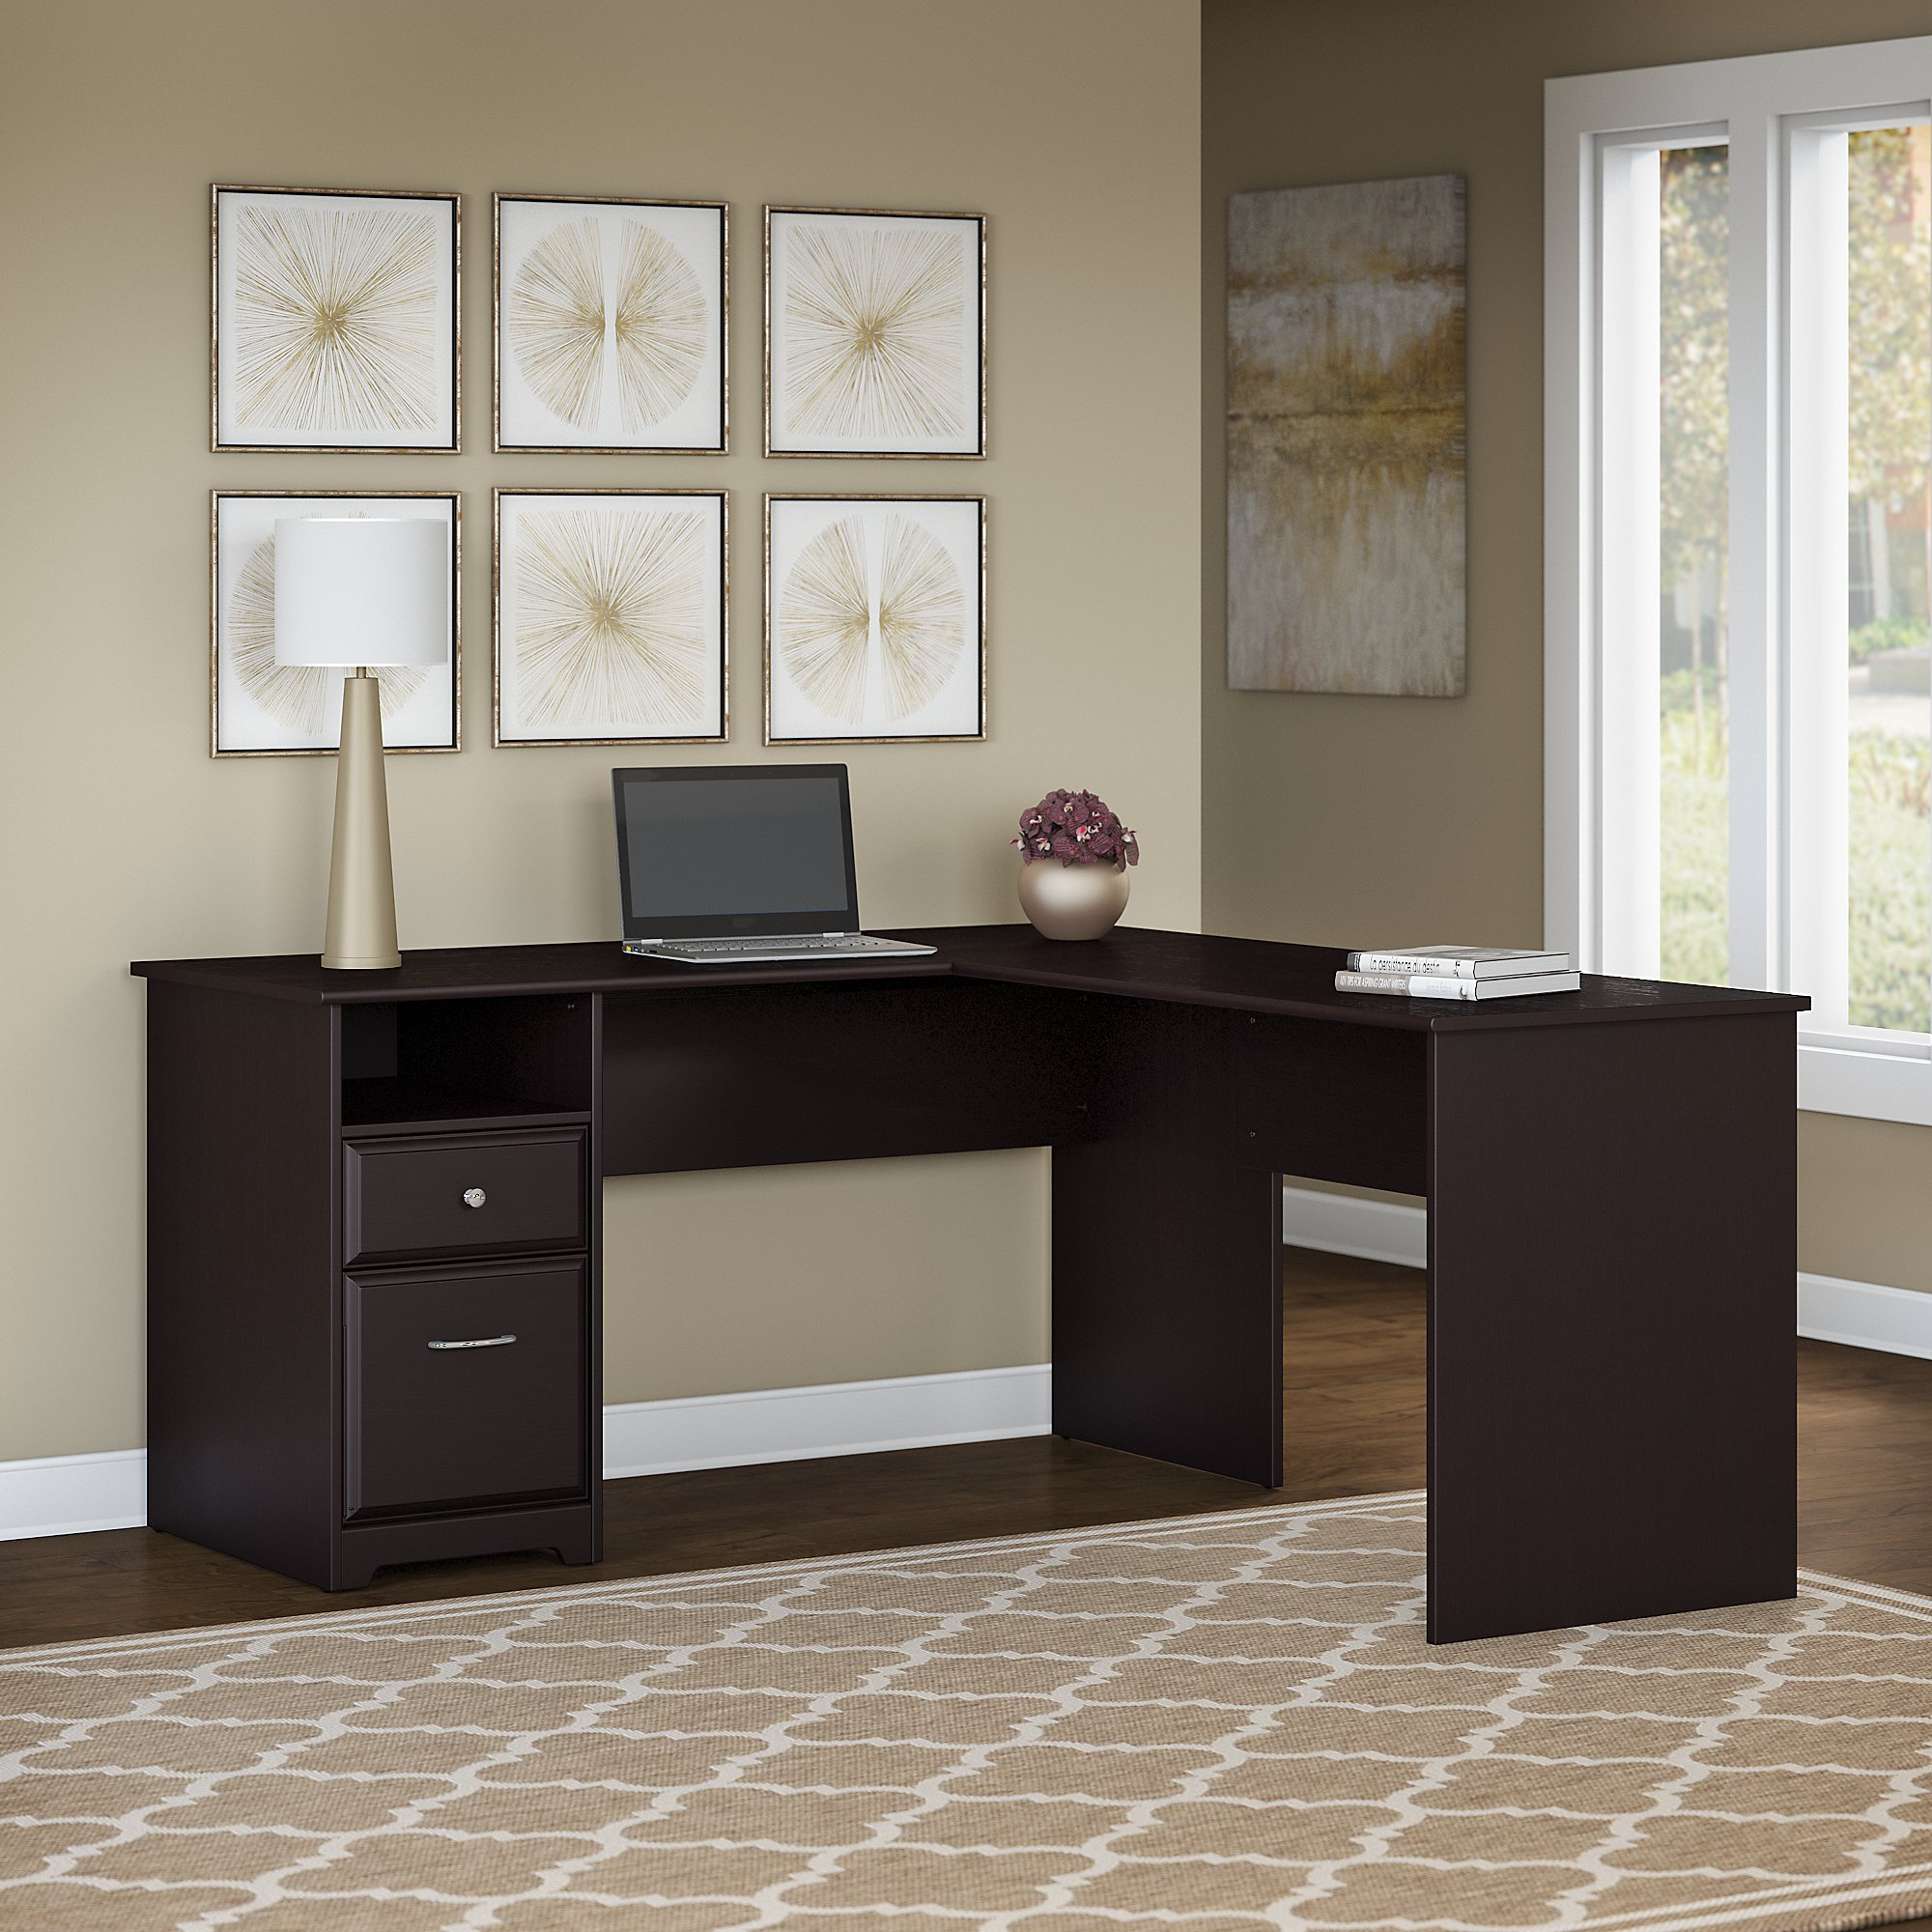 Bon Bush Furniture Cabot 60W L Shaped Computer Desk With Drawers In Espresso  Oak   Walmart.com